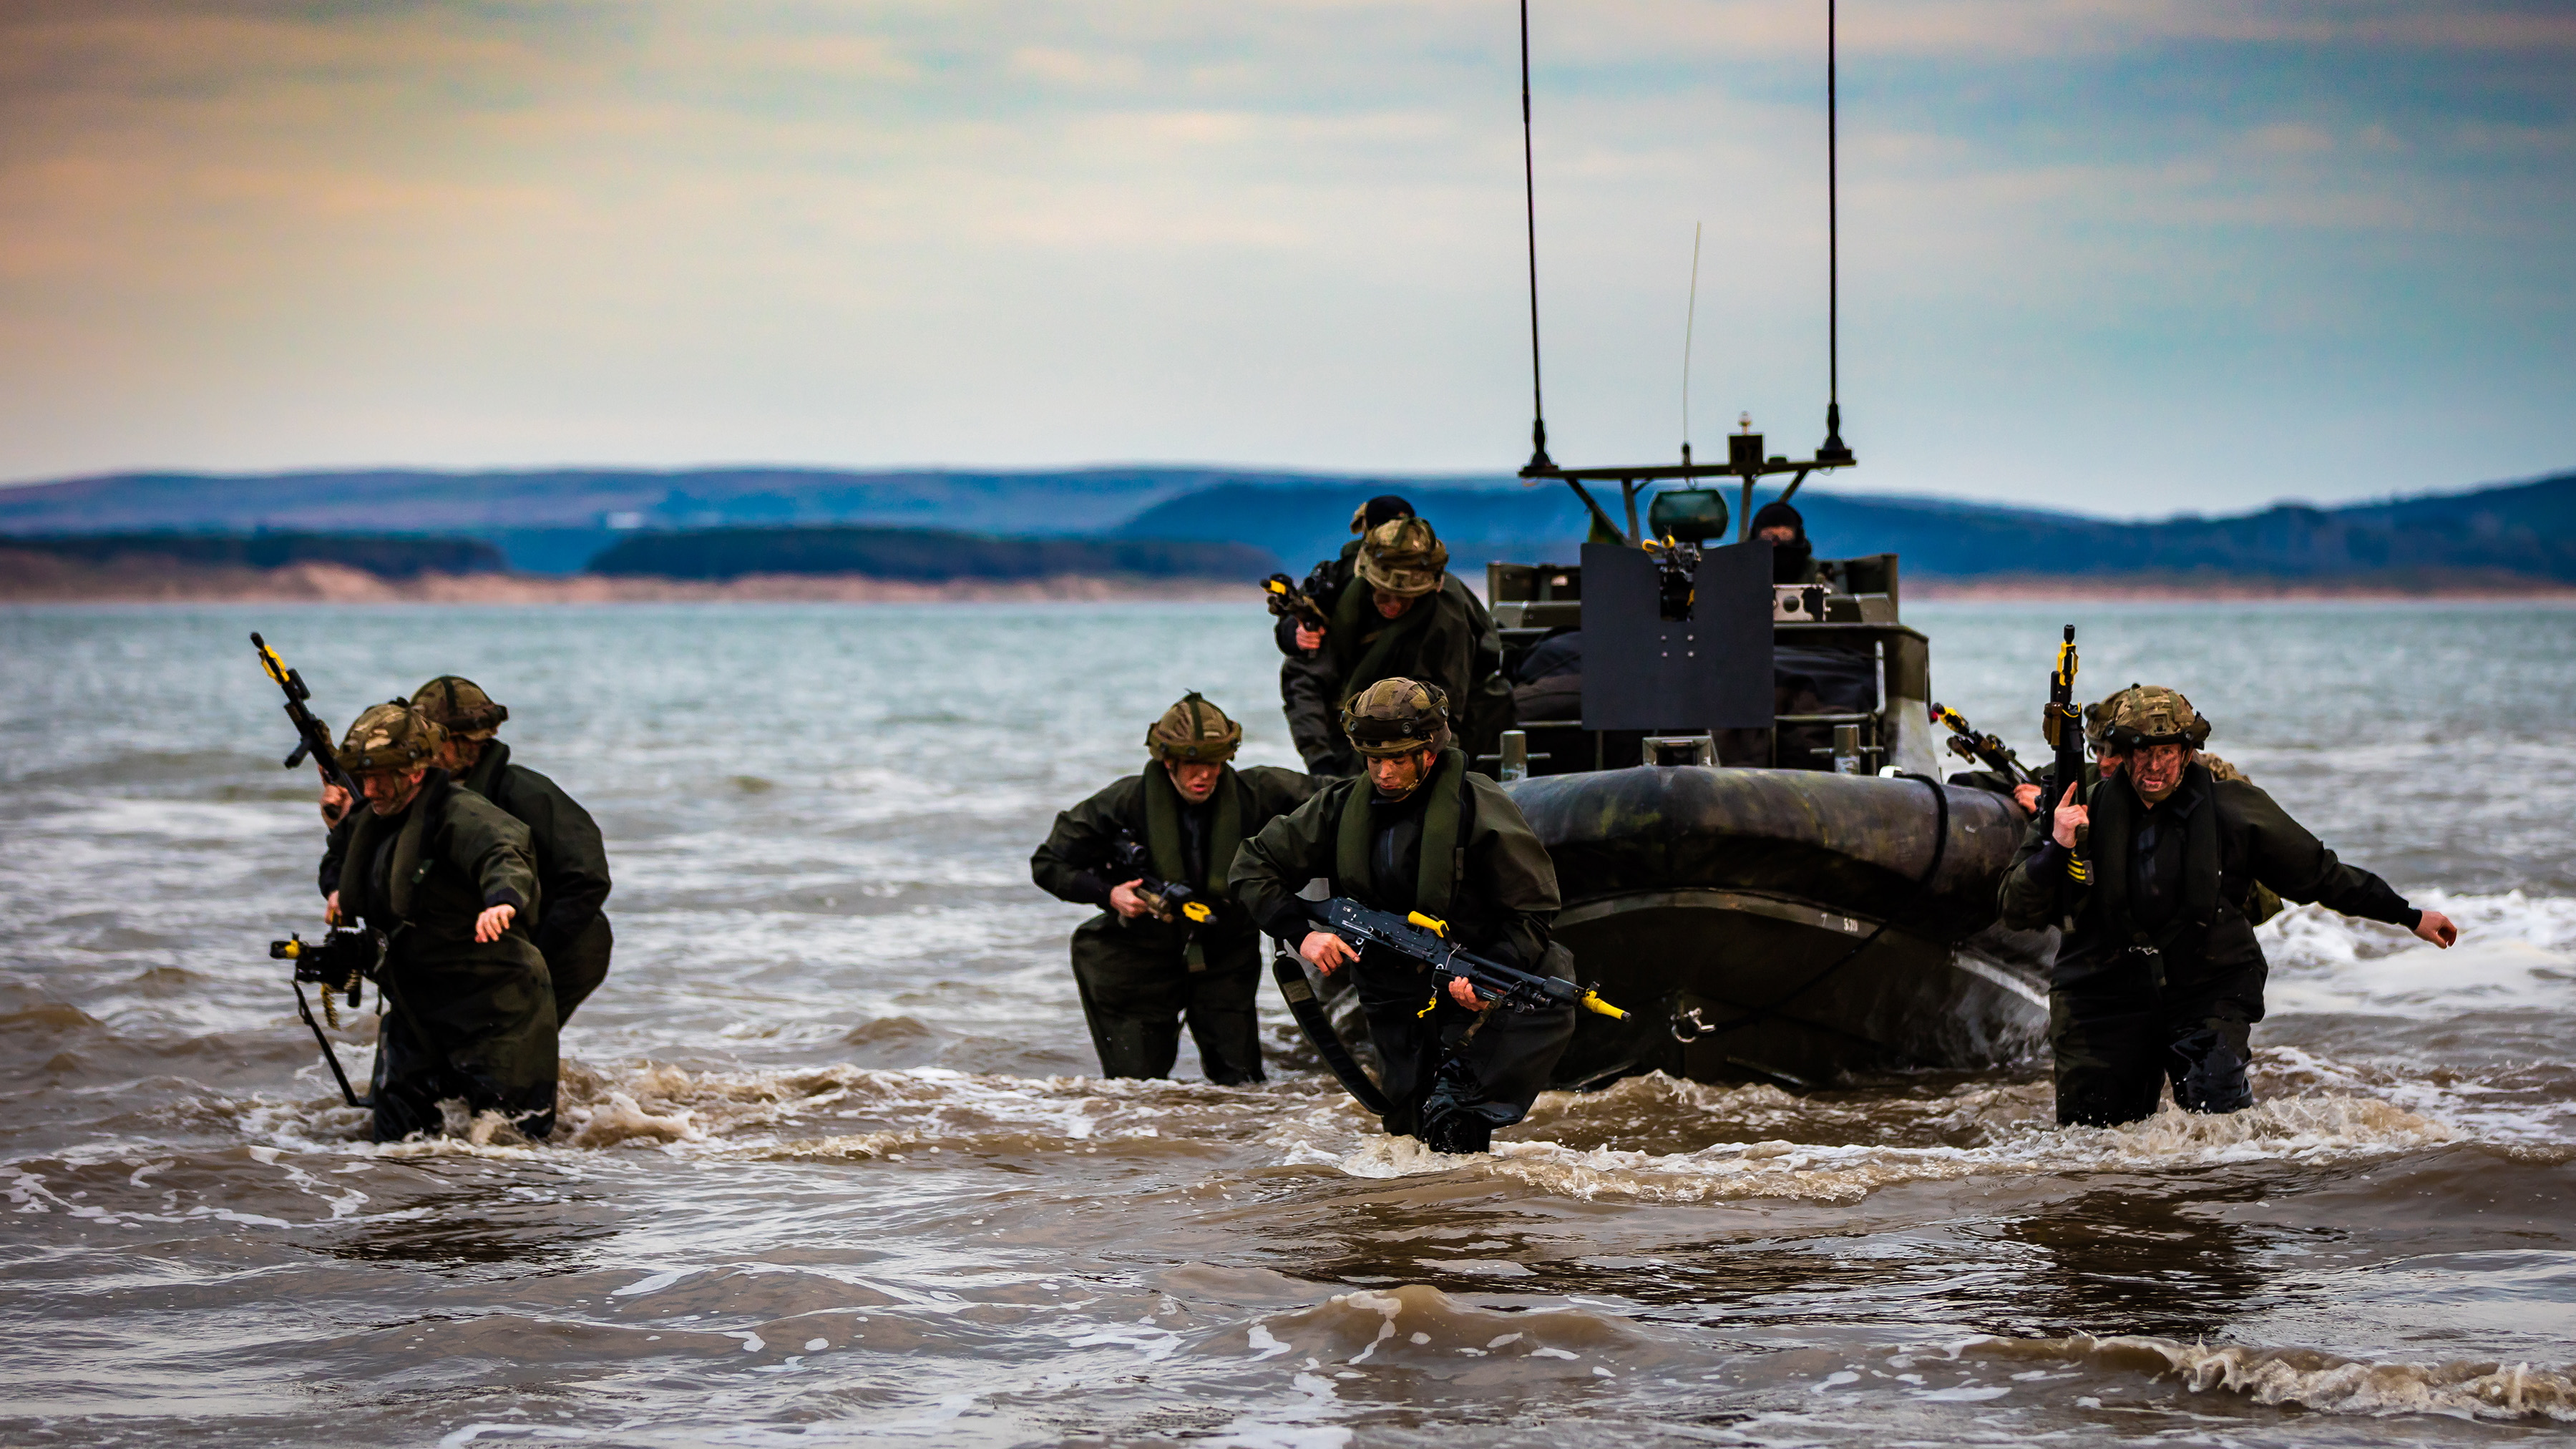 Over 10,000 personnel are to be deployed as a major international military exercise is to come to the north west